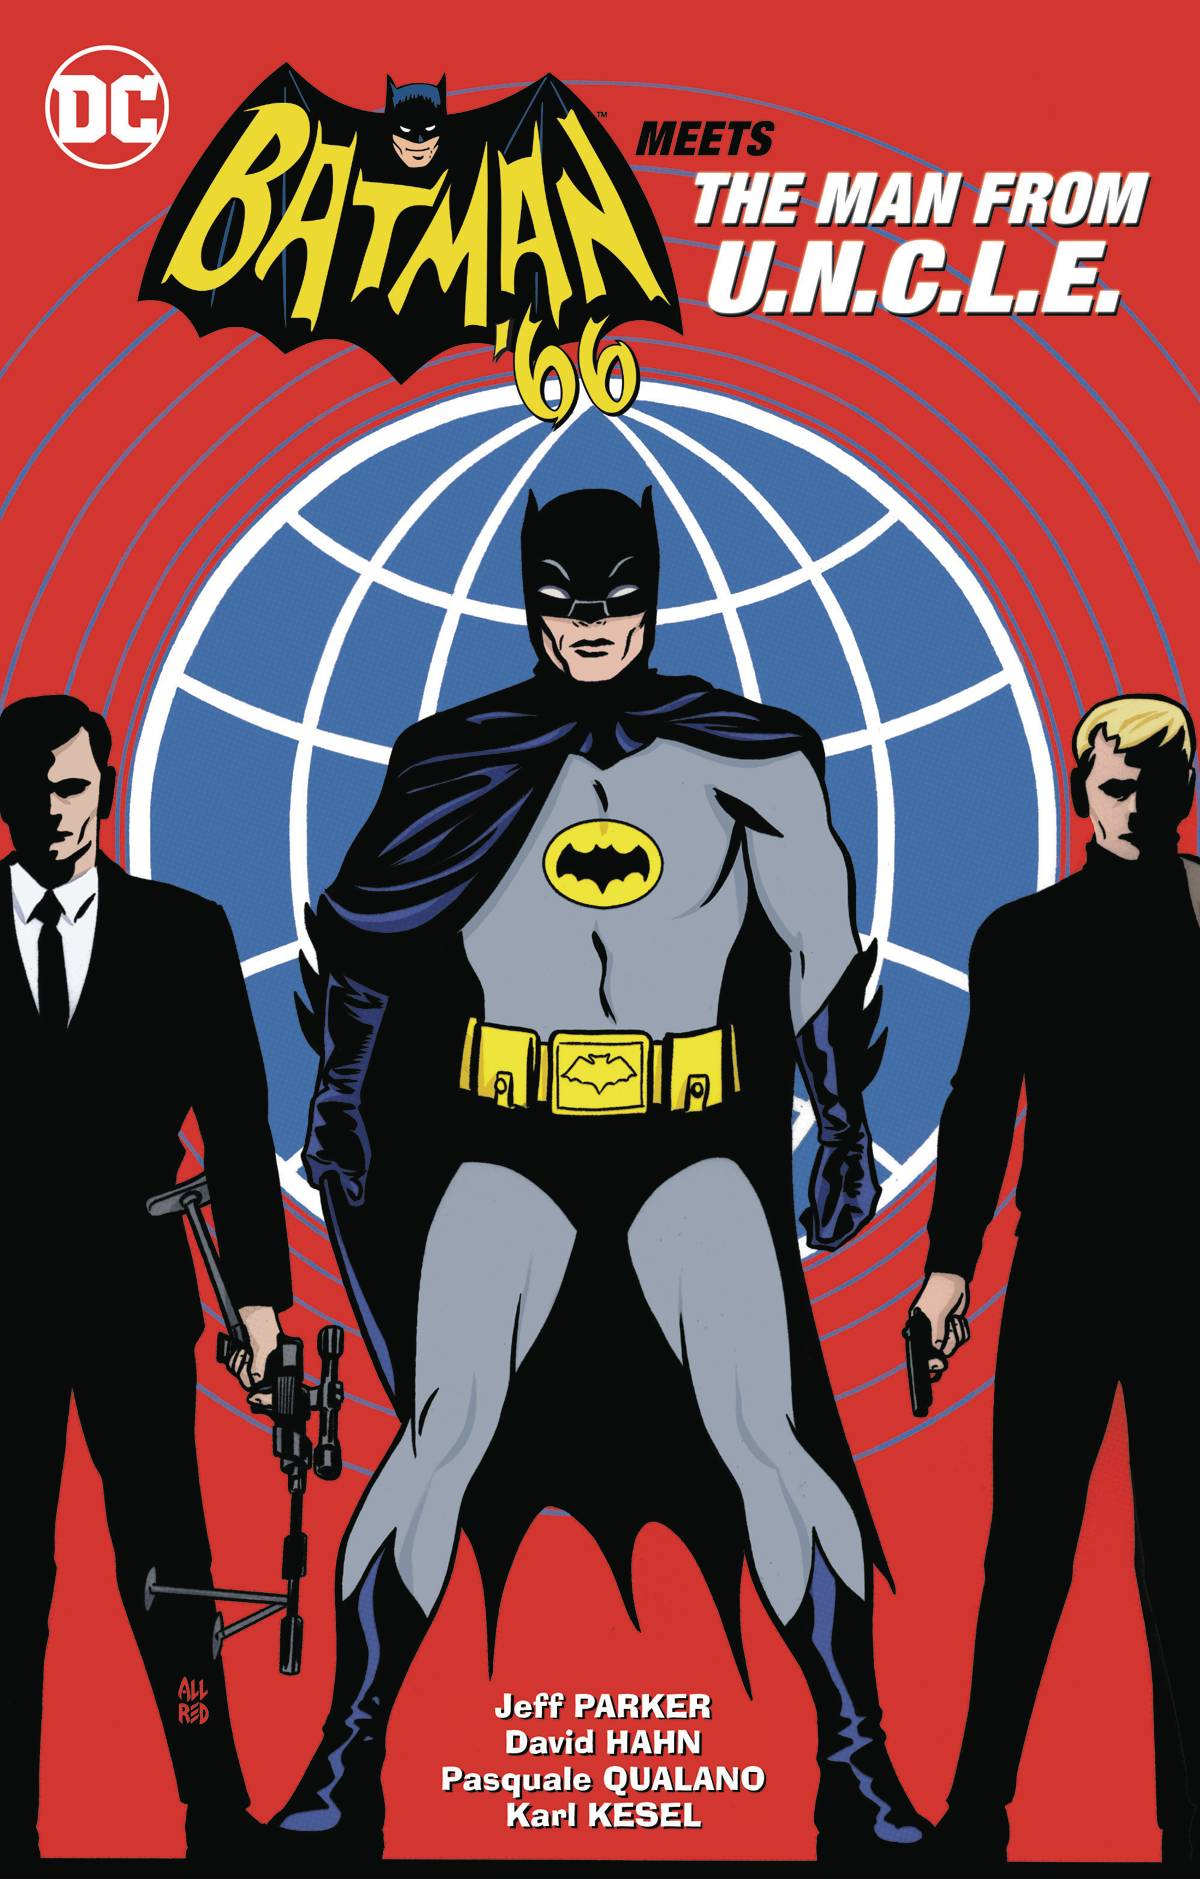 BATMAN 66 MEETS THE MAN FROM UNCLE TP